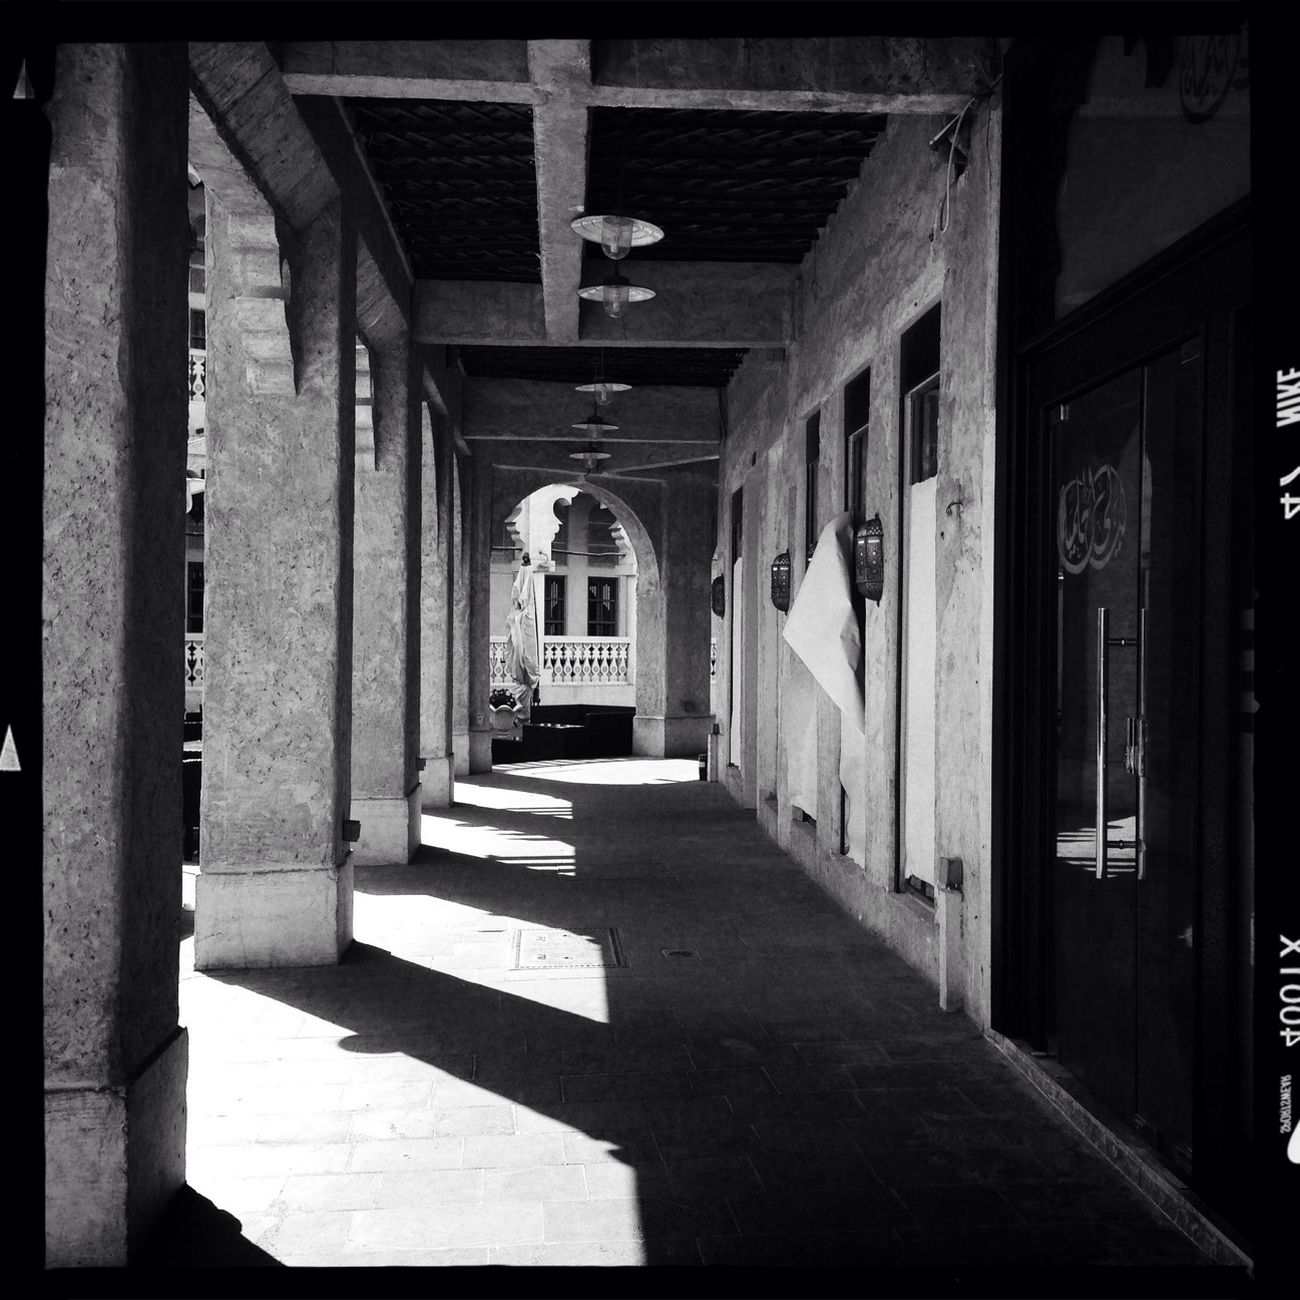 AO DLX Film Blackandwhite Vanishing Point AMPt - Vanishing Point